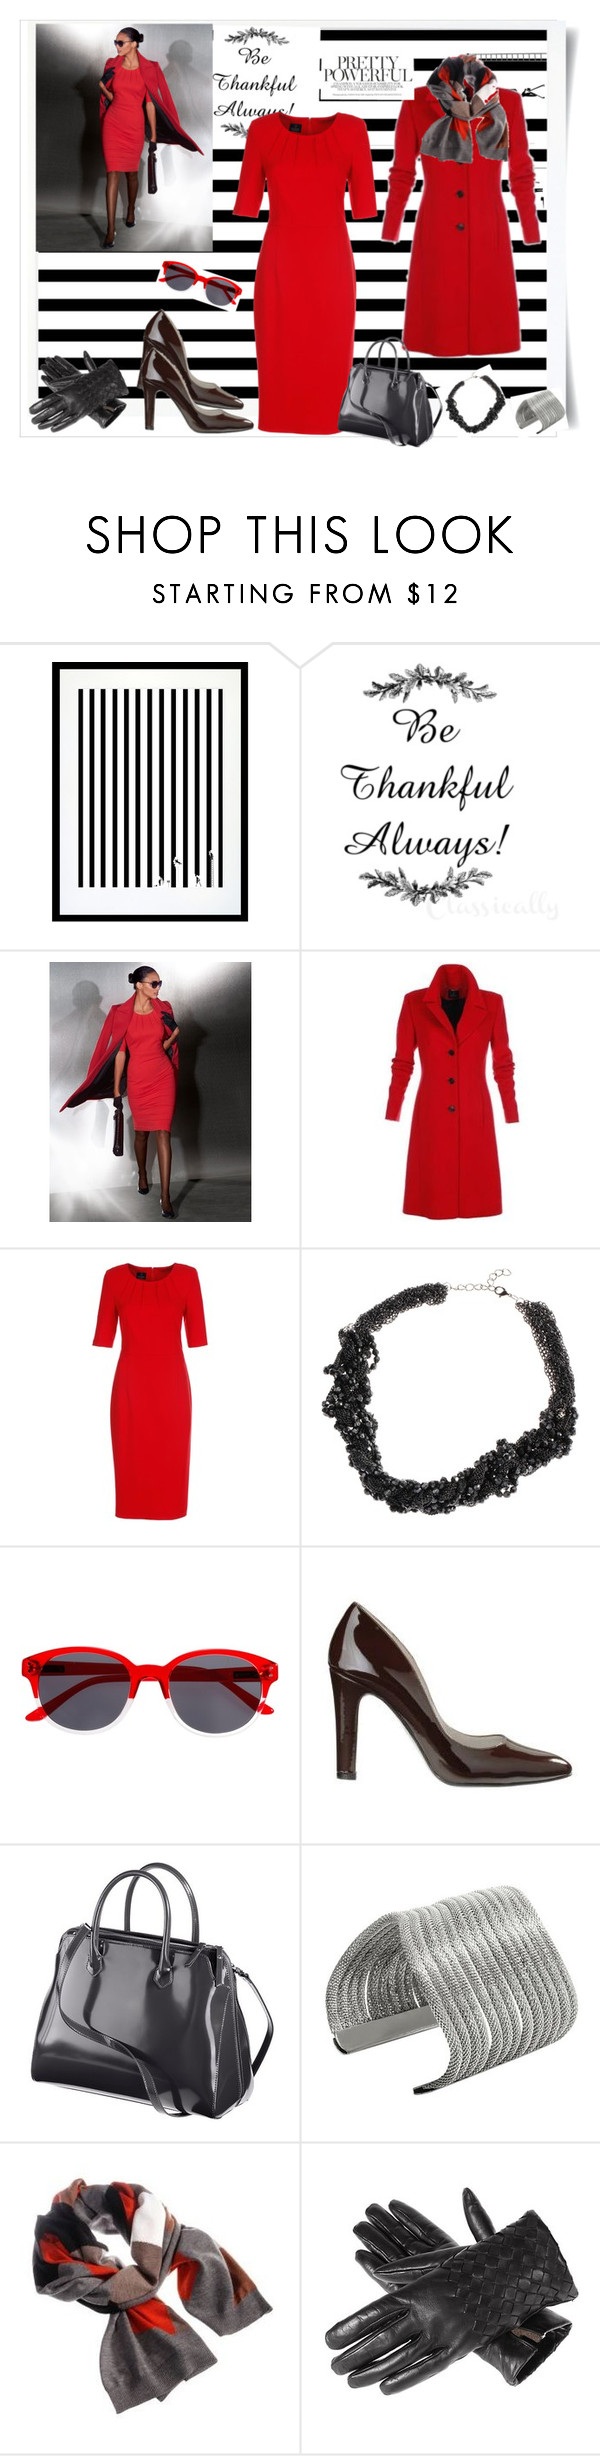 """Madelene outfit by rousou"" by rousou ❤ liked on Polyvore featuring Eleanor Stuart"